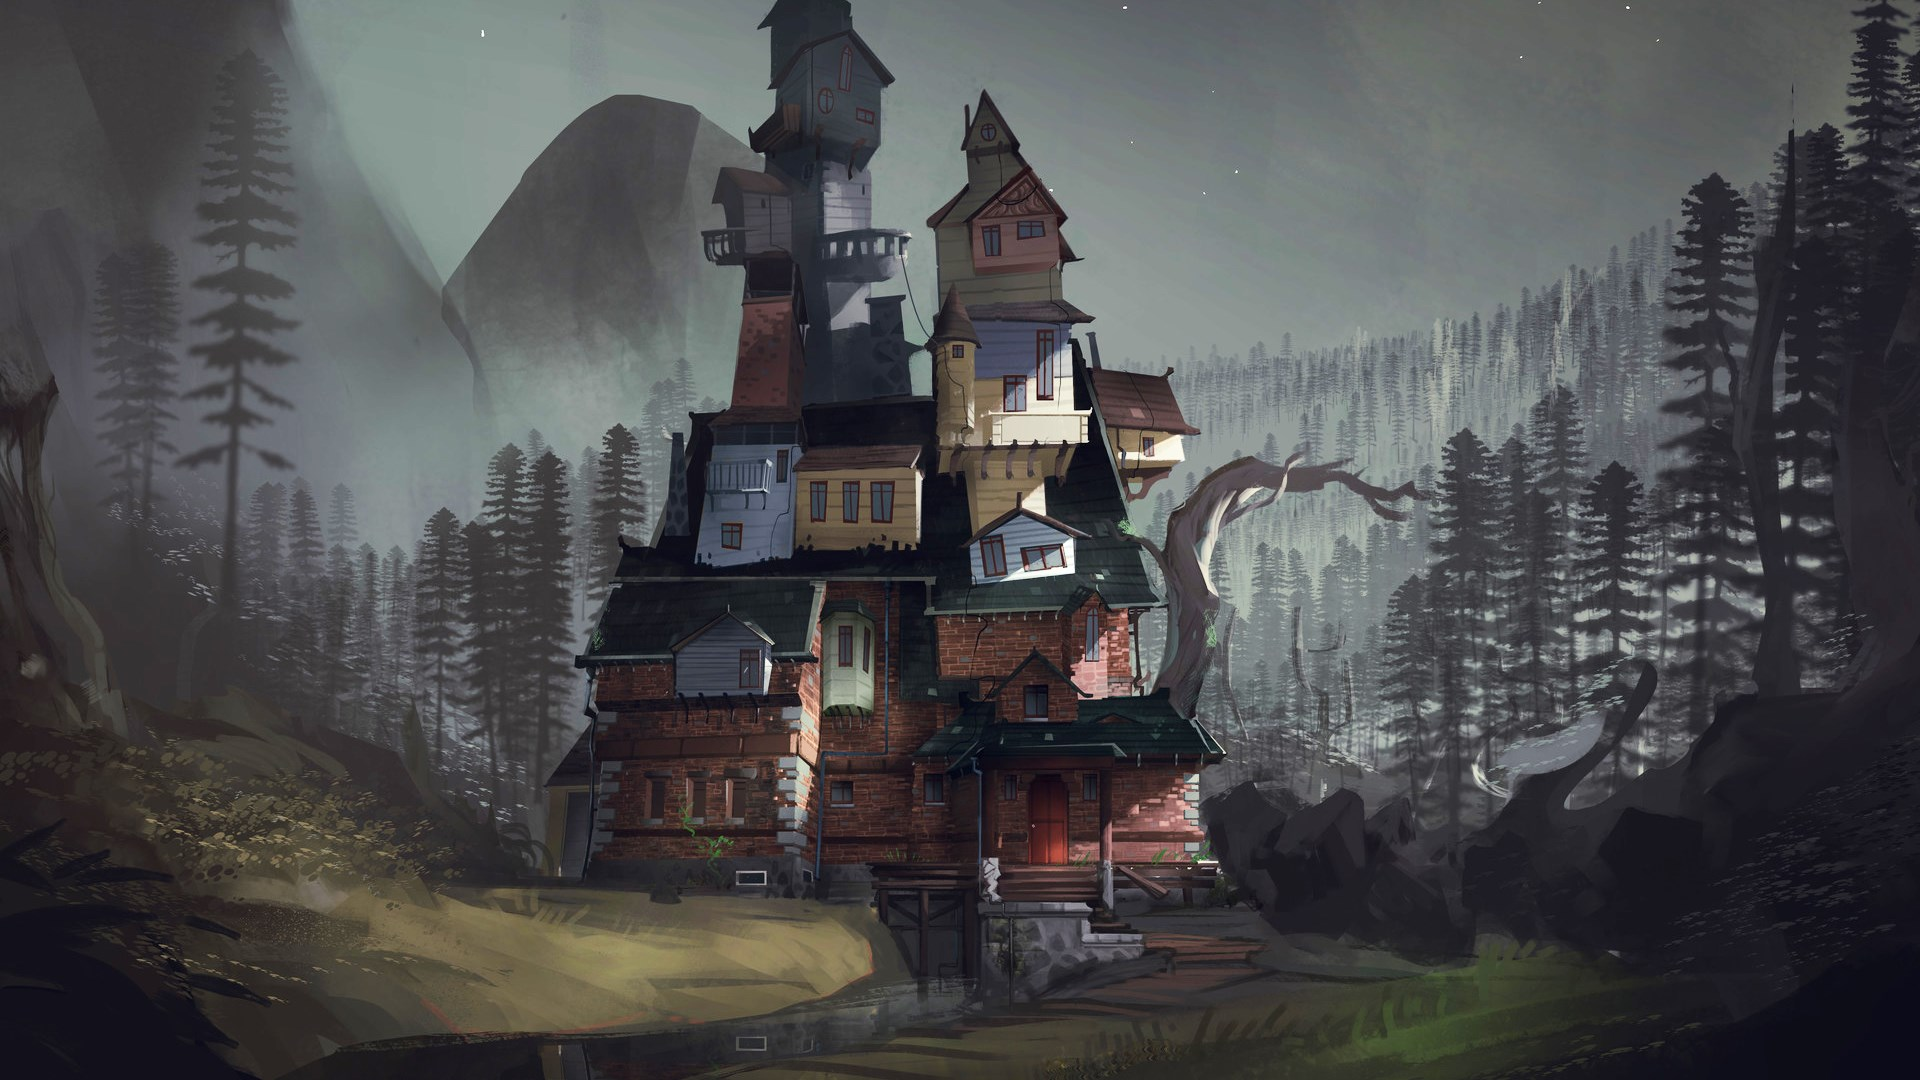 What Remains of Edith Finch is free on the Epic Games Store